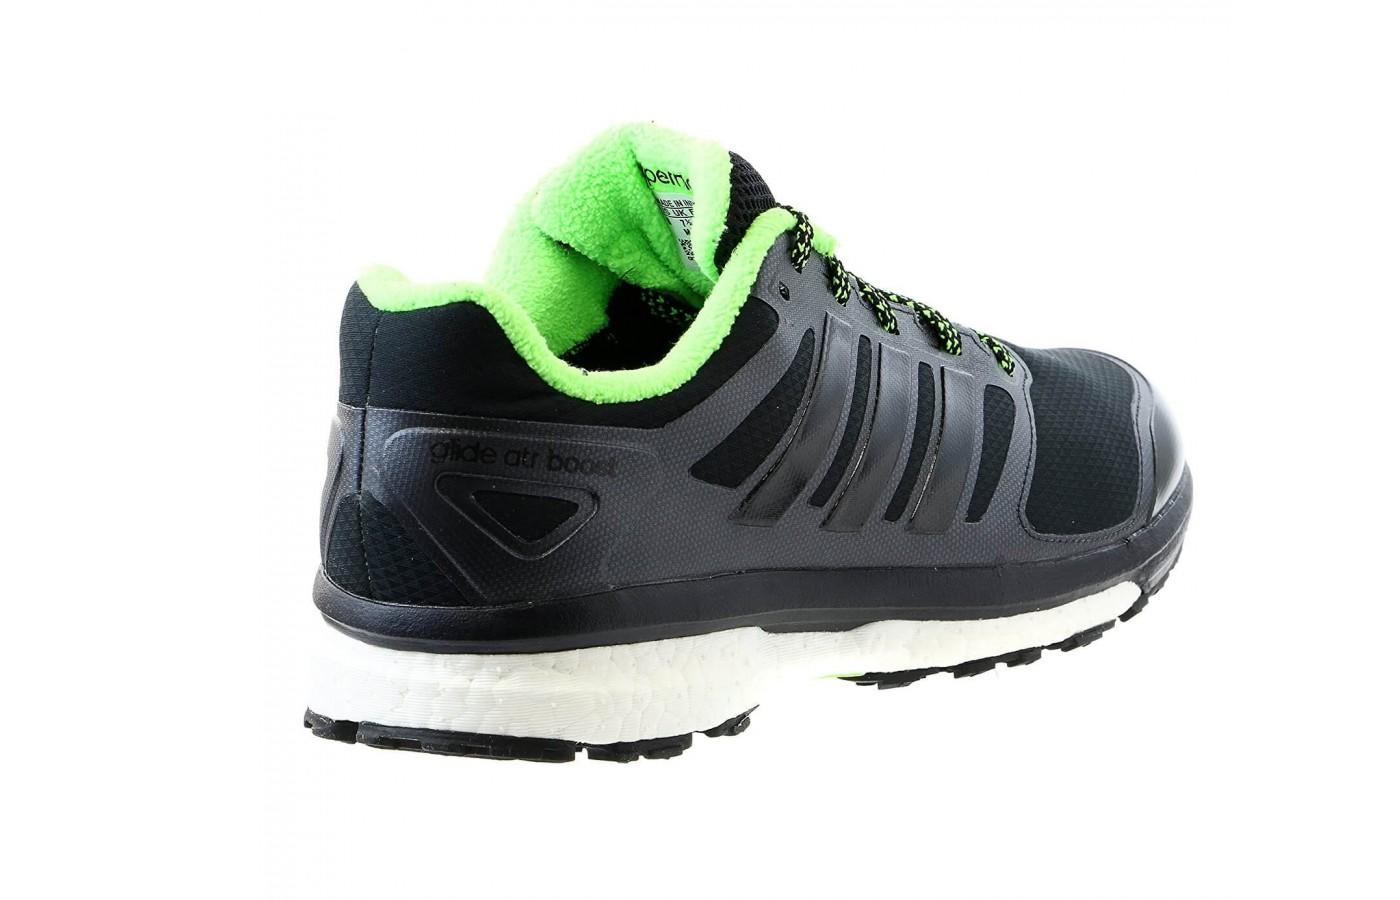 Adidas Supernova Glide ATR - rear diagonal view